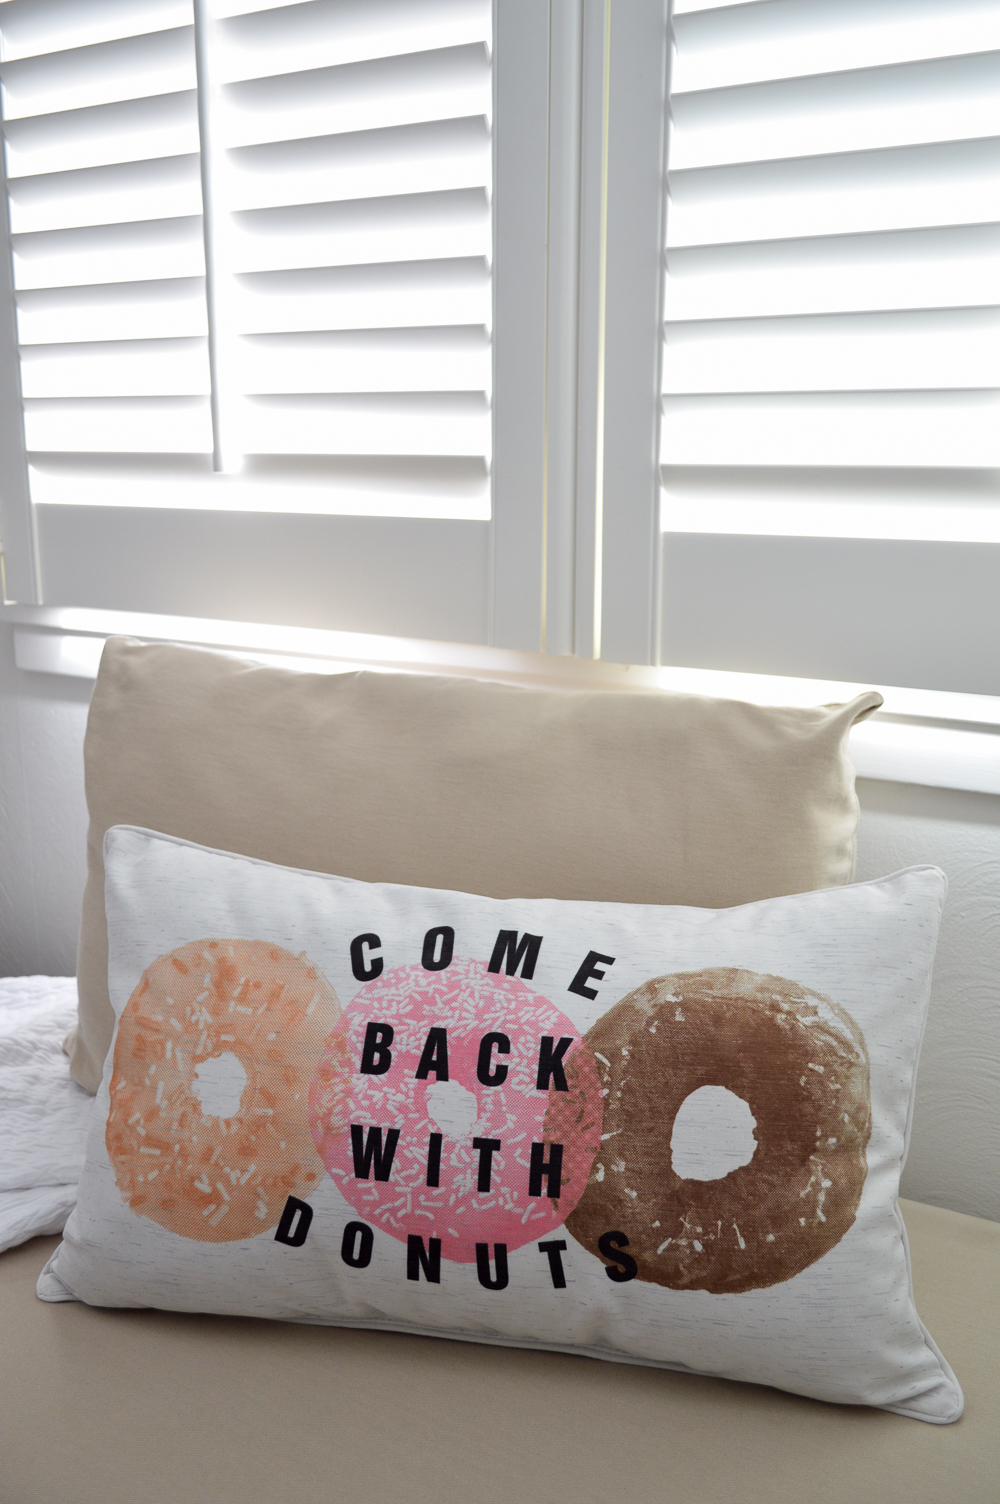 Come Back With Donuts silly fun pillow